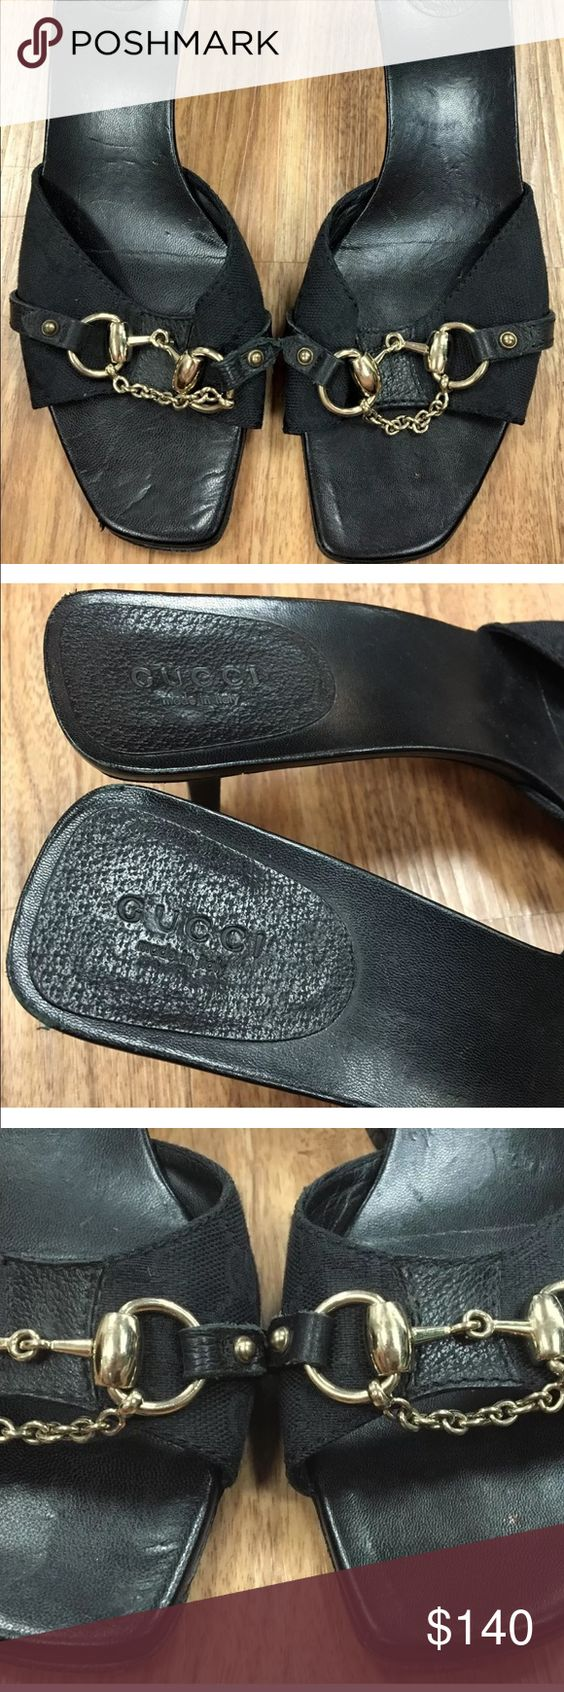 Gucci shoes(Reserved) Beautifully kept Gucci in excellent condition Gucci Shoes Sandals